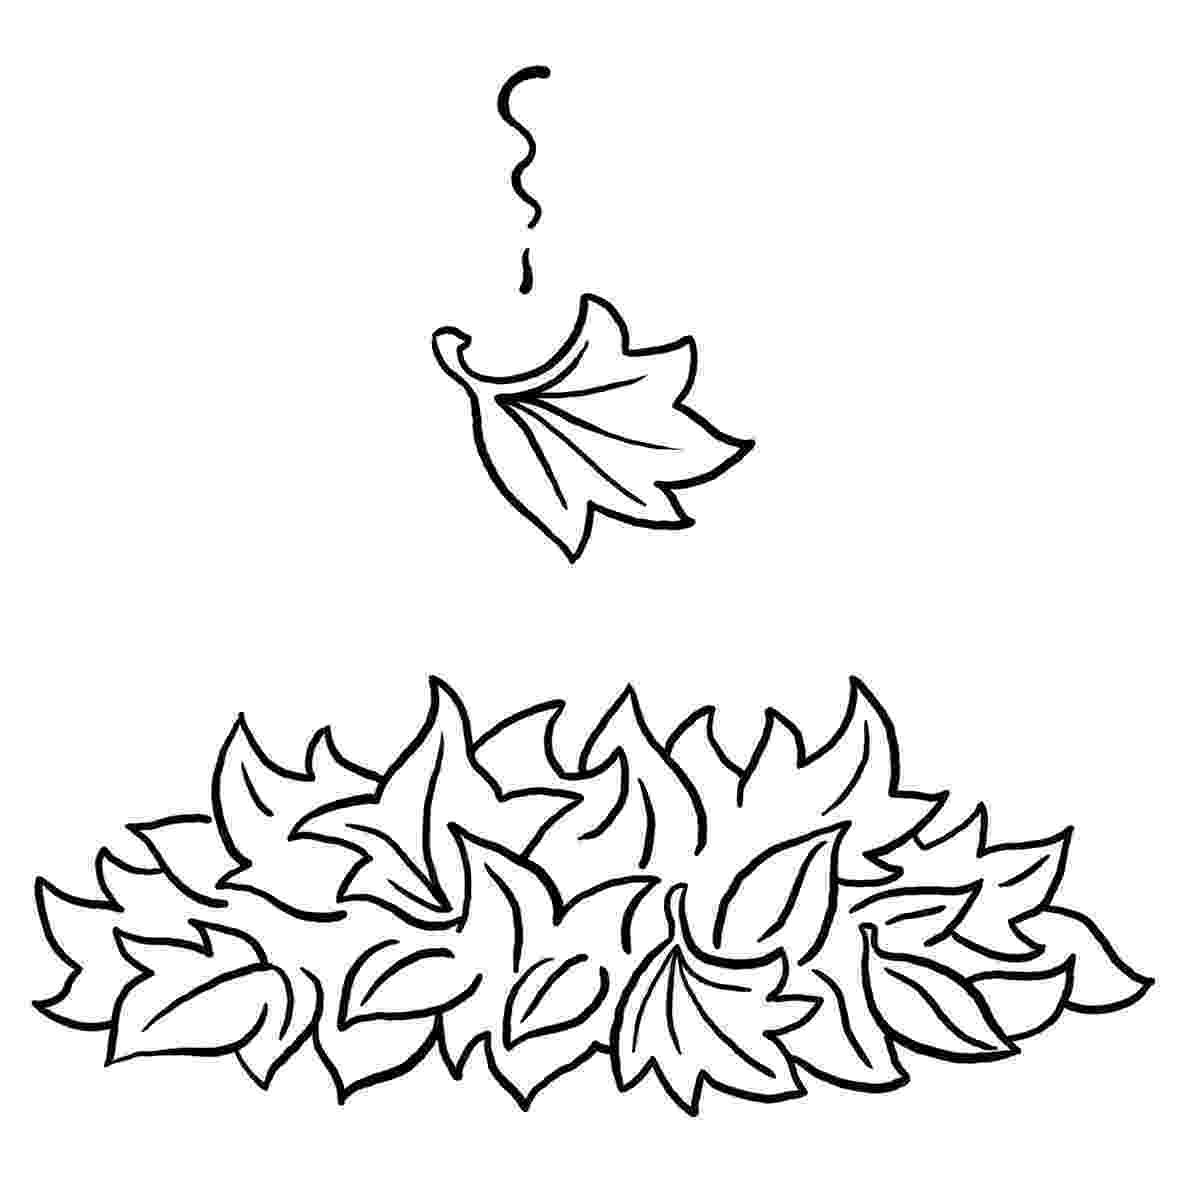 coloring leaves 20 best leaves coloring pages images on pinterest kids leaves coloring